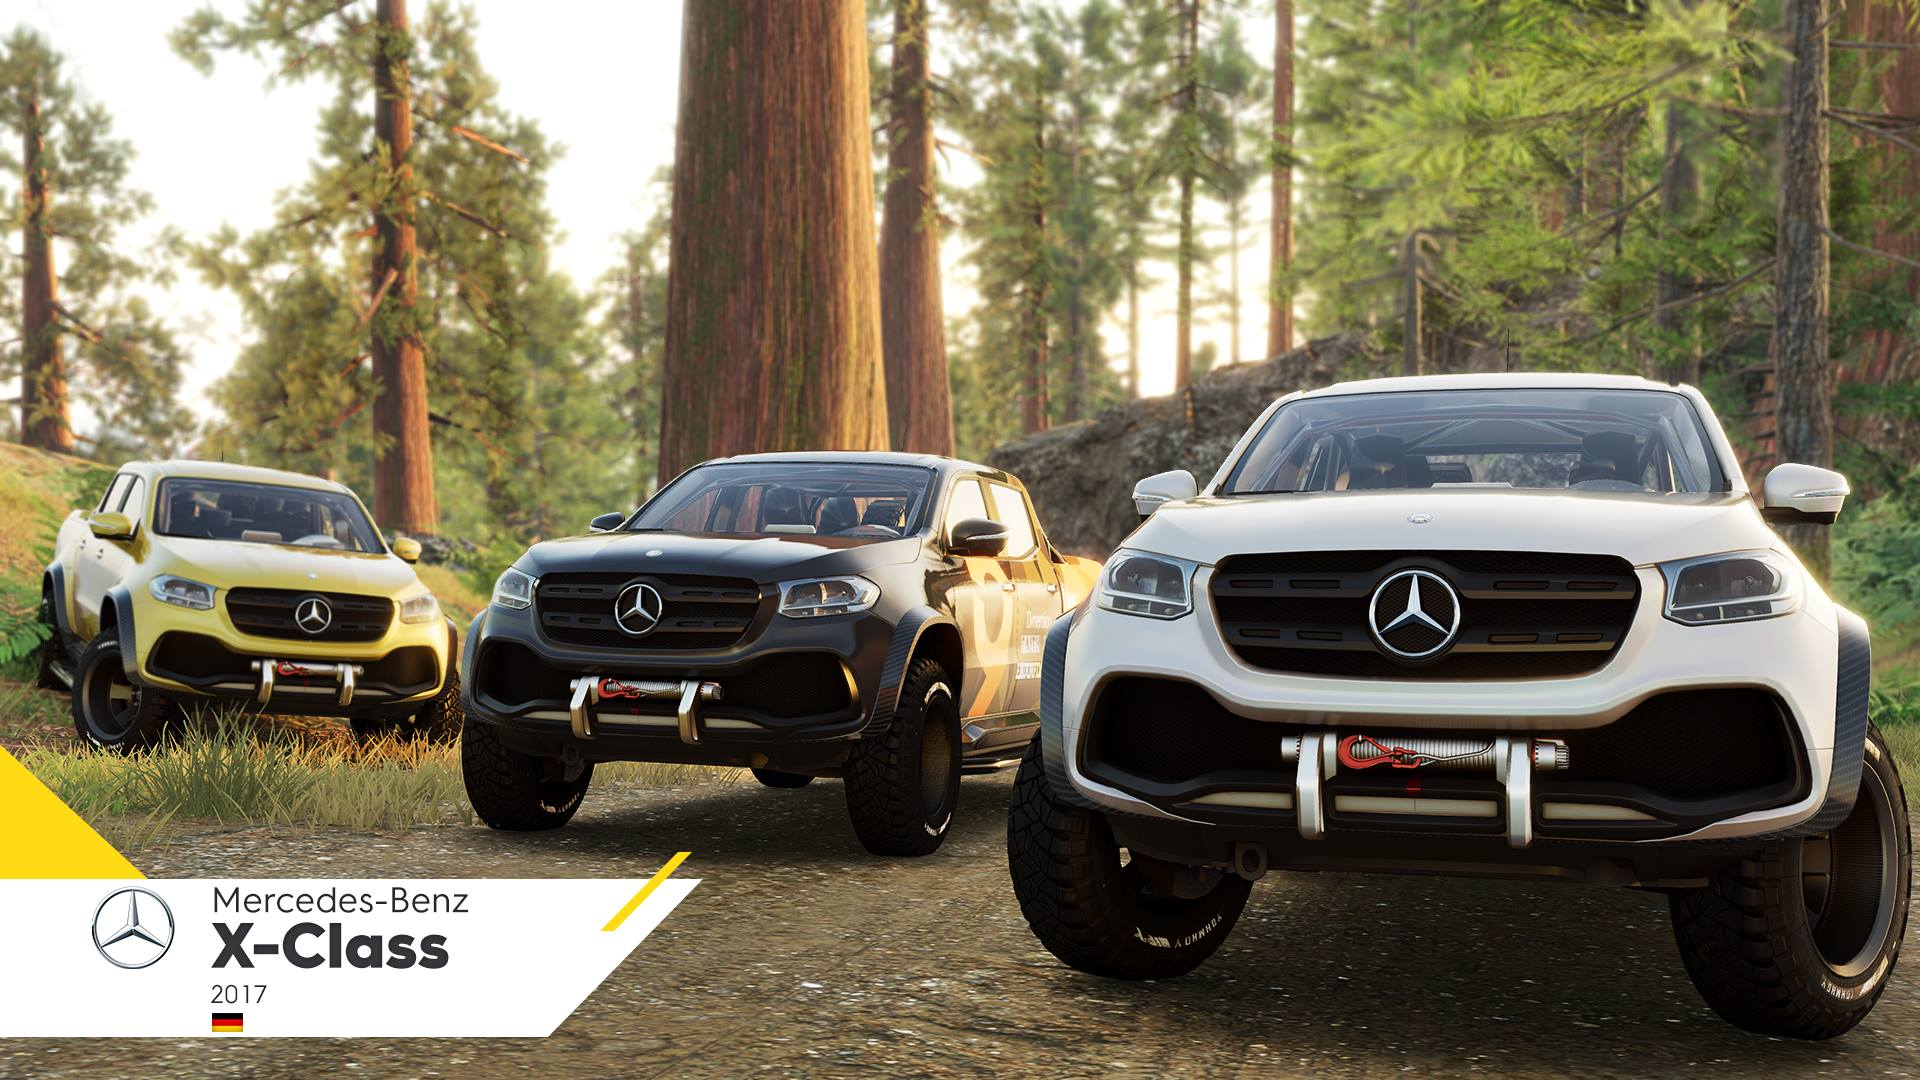 Mercedes-Benz X-Class pick-up truck confirmed for The Crew 2